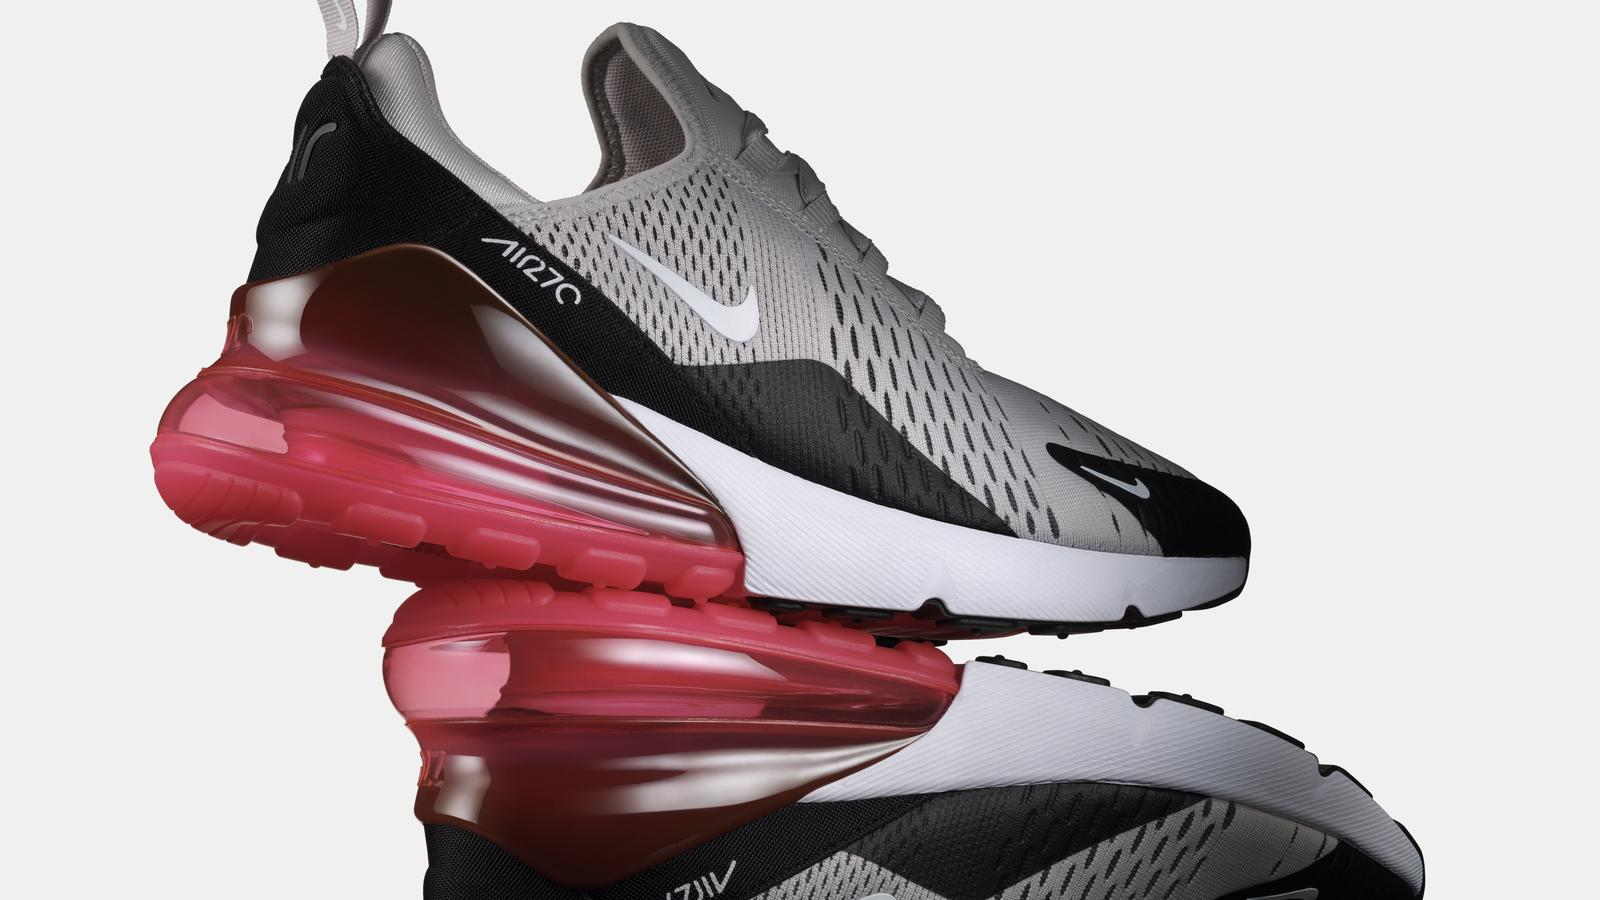 f76f2463e83f8 The new Nike sneakers helping the swoosh back to its feet in America